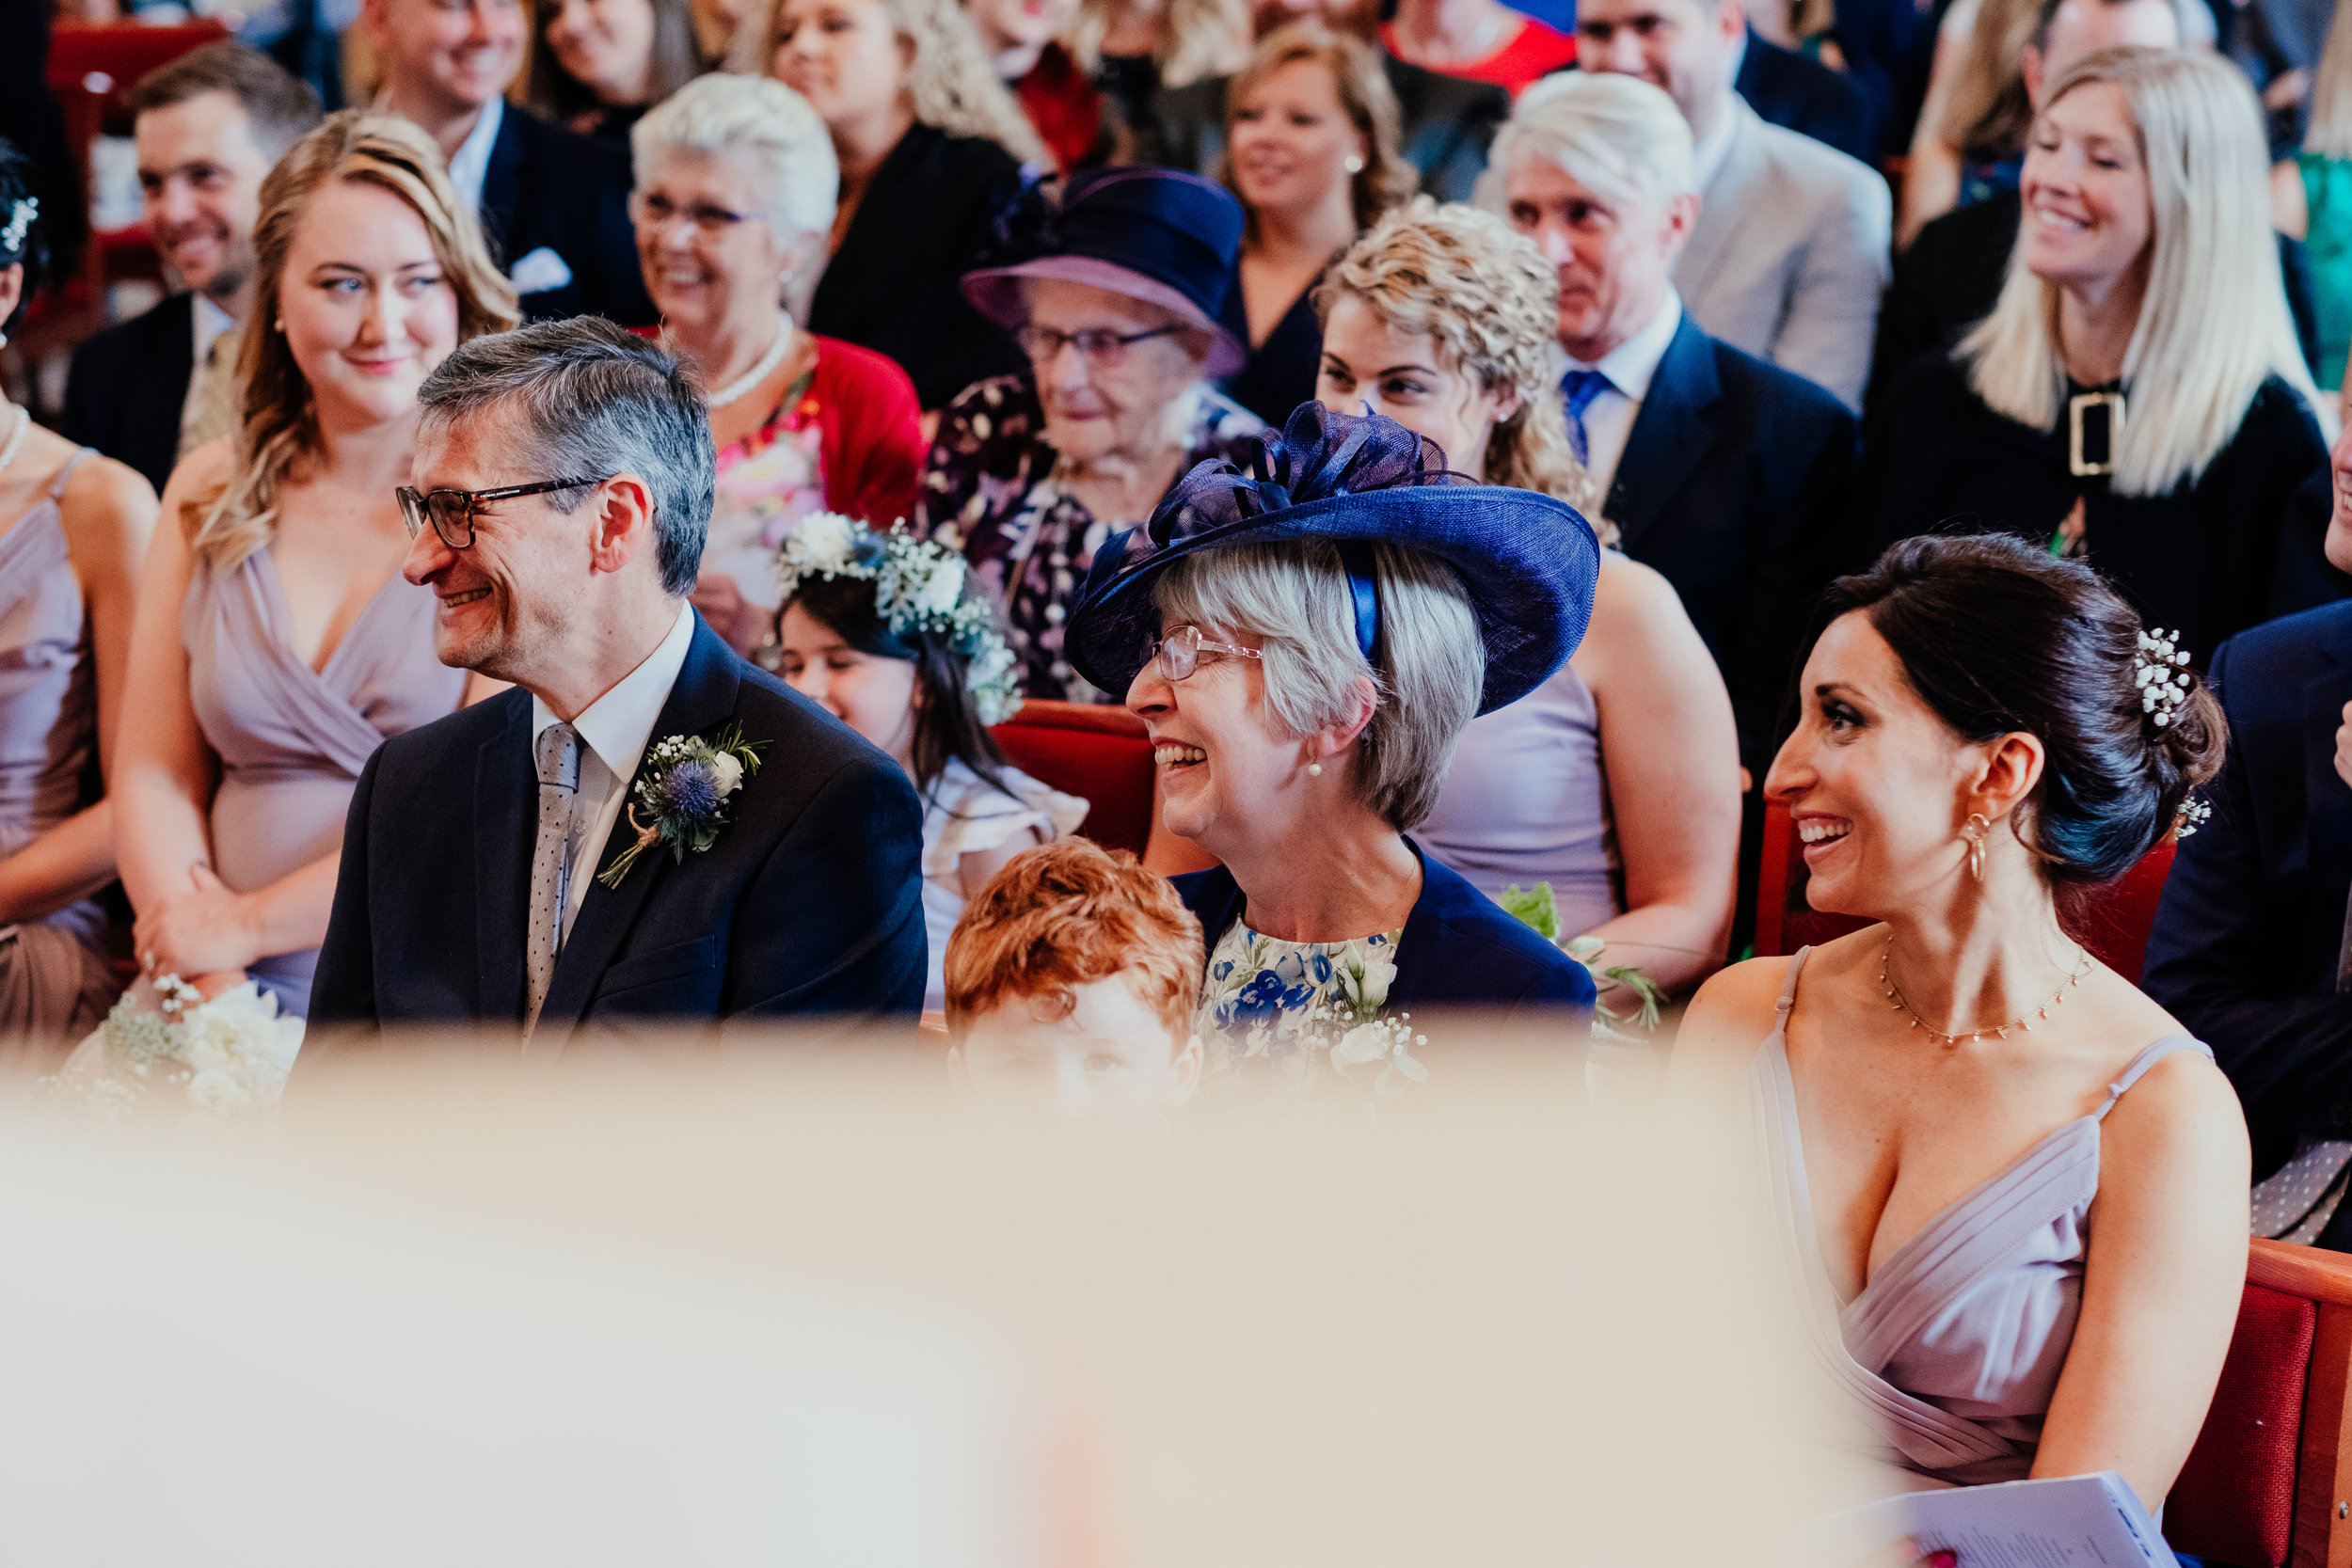 Wedding guests laughing during wedding ceremony